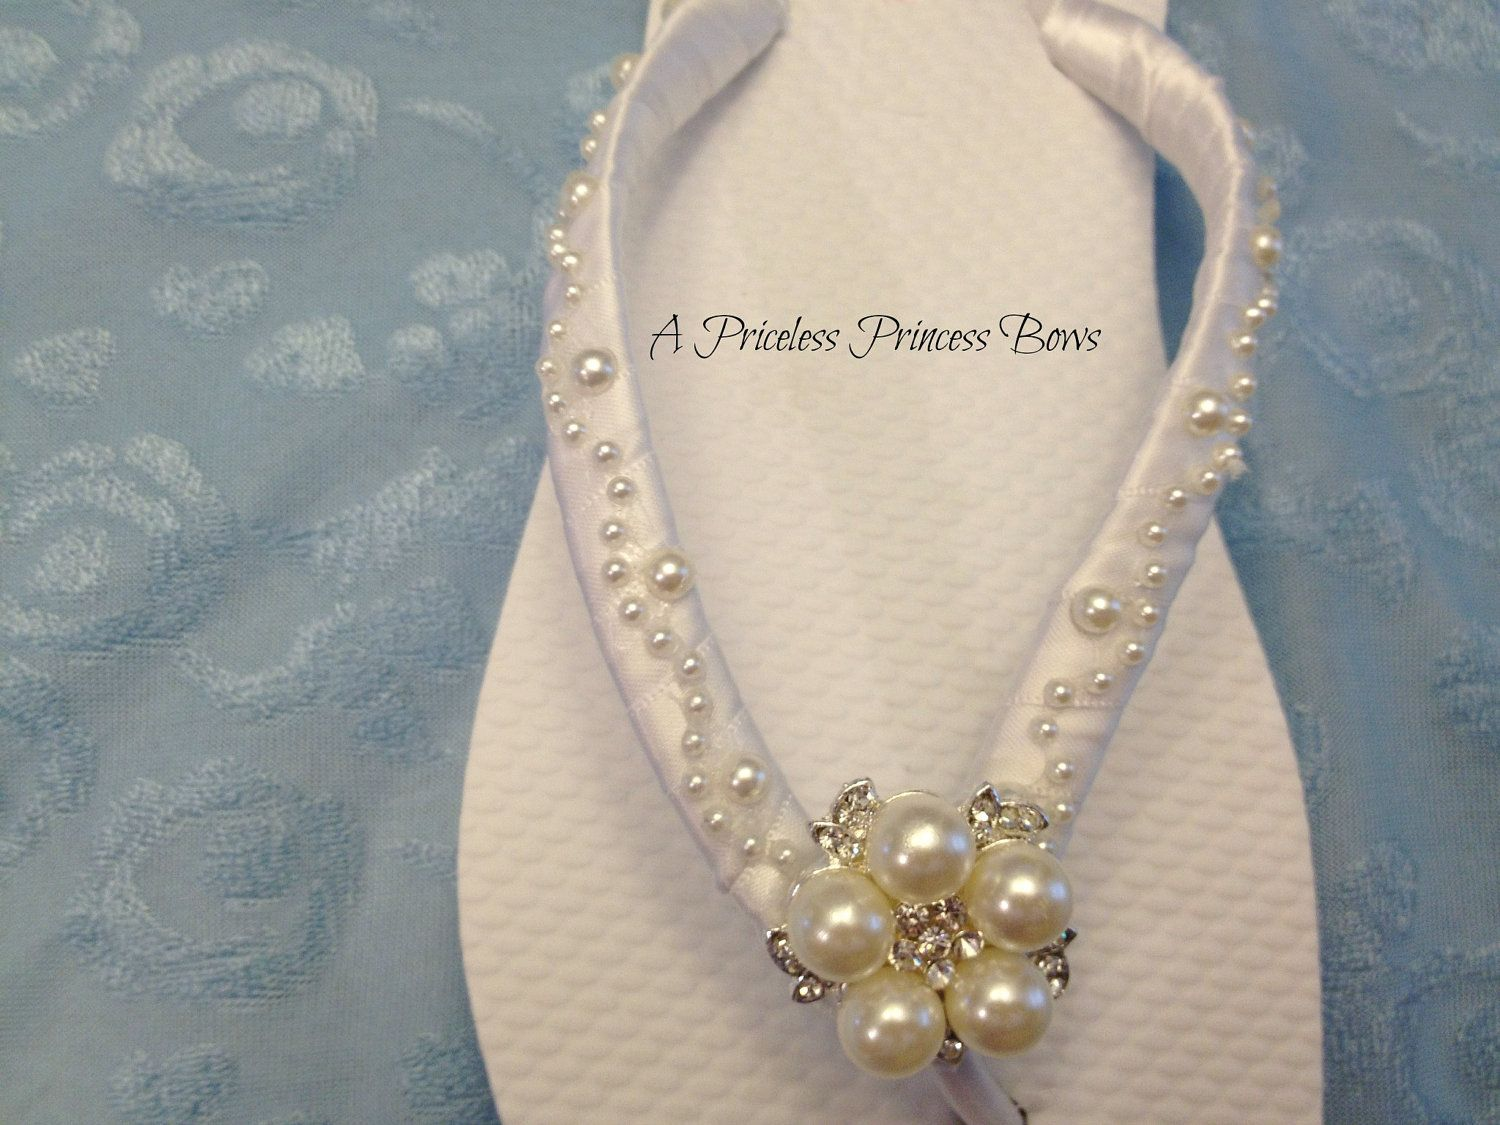 wedding sandals for bride Bride Flip Flops Pearl Flip Flops Bridal Flip Flops Wedding Sandals Bridal Sandals Bride Beach Shoes Custom Colors Available